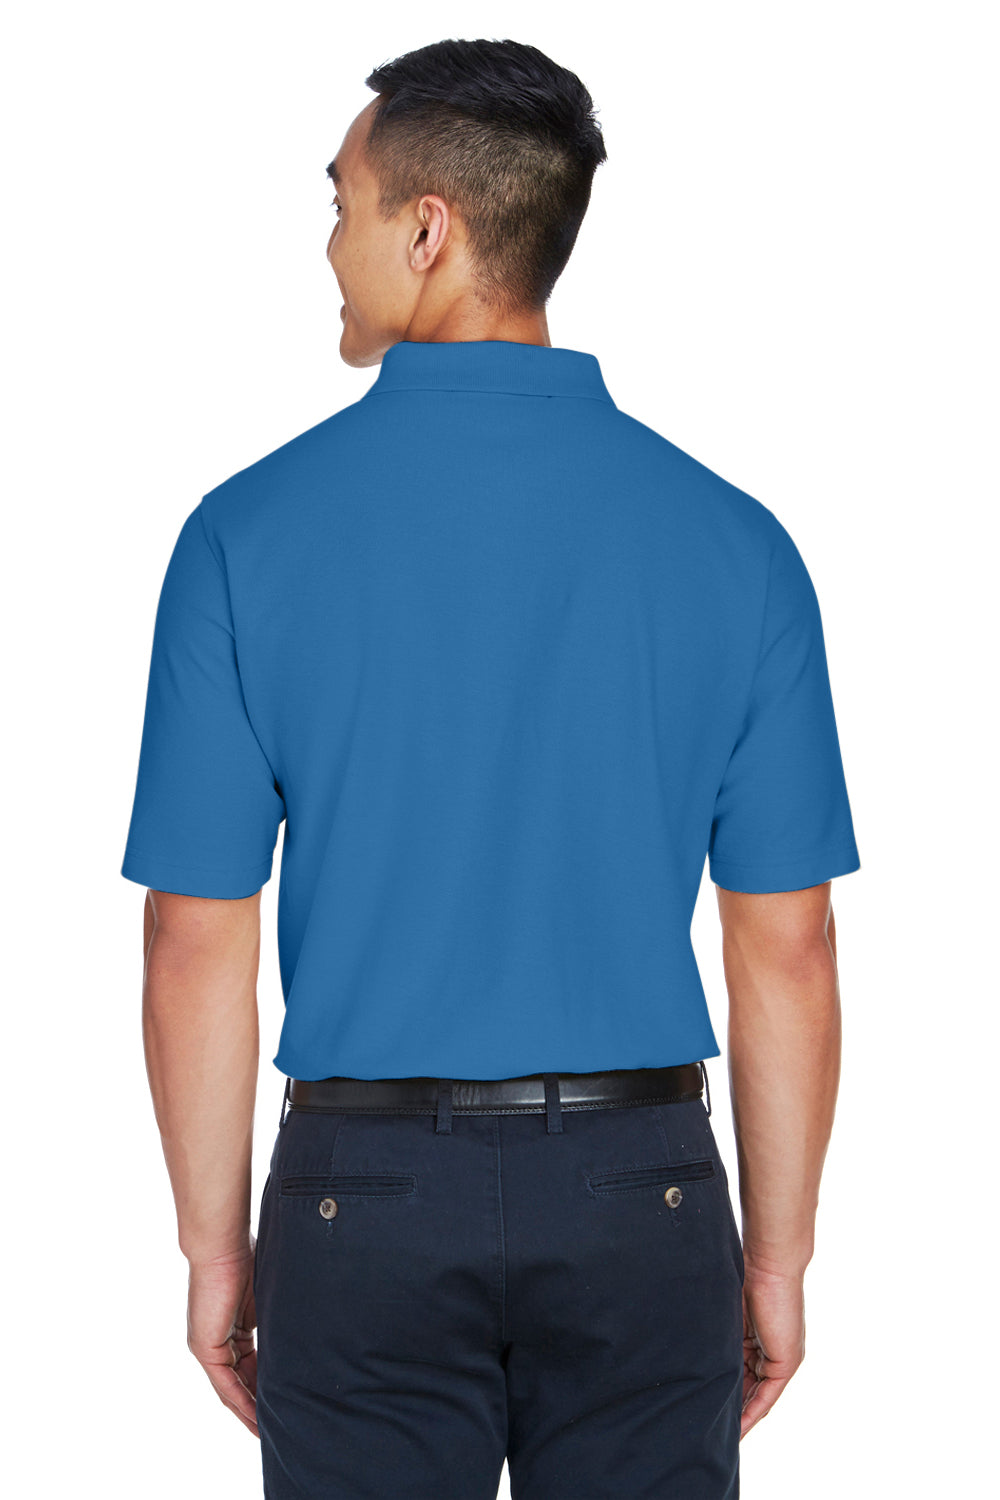 Devon & Jones DG150 Mens DryTec20 Performance Moisture Wicking Short Sleeve Polo Shirt French Blue Back